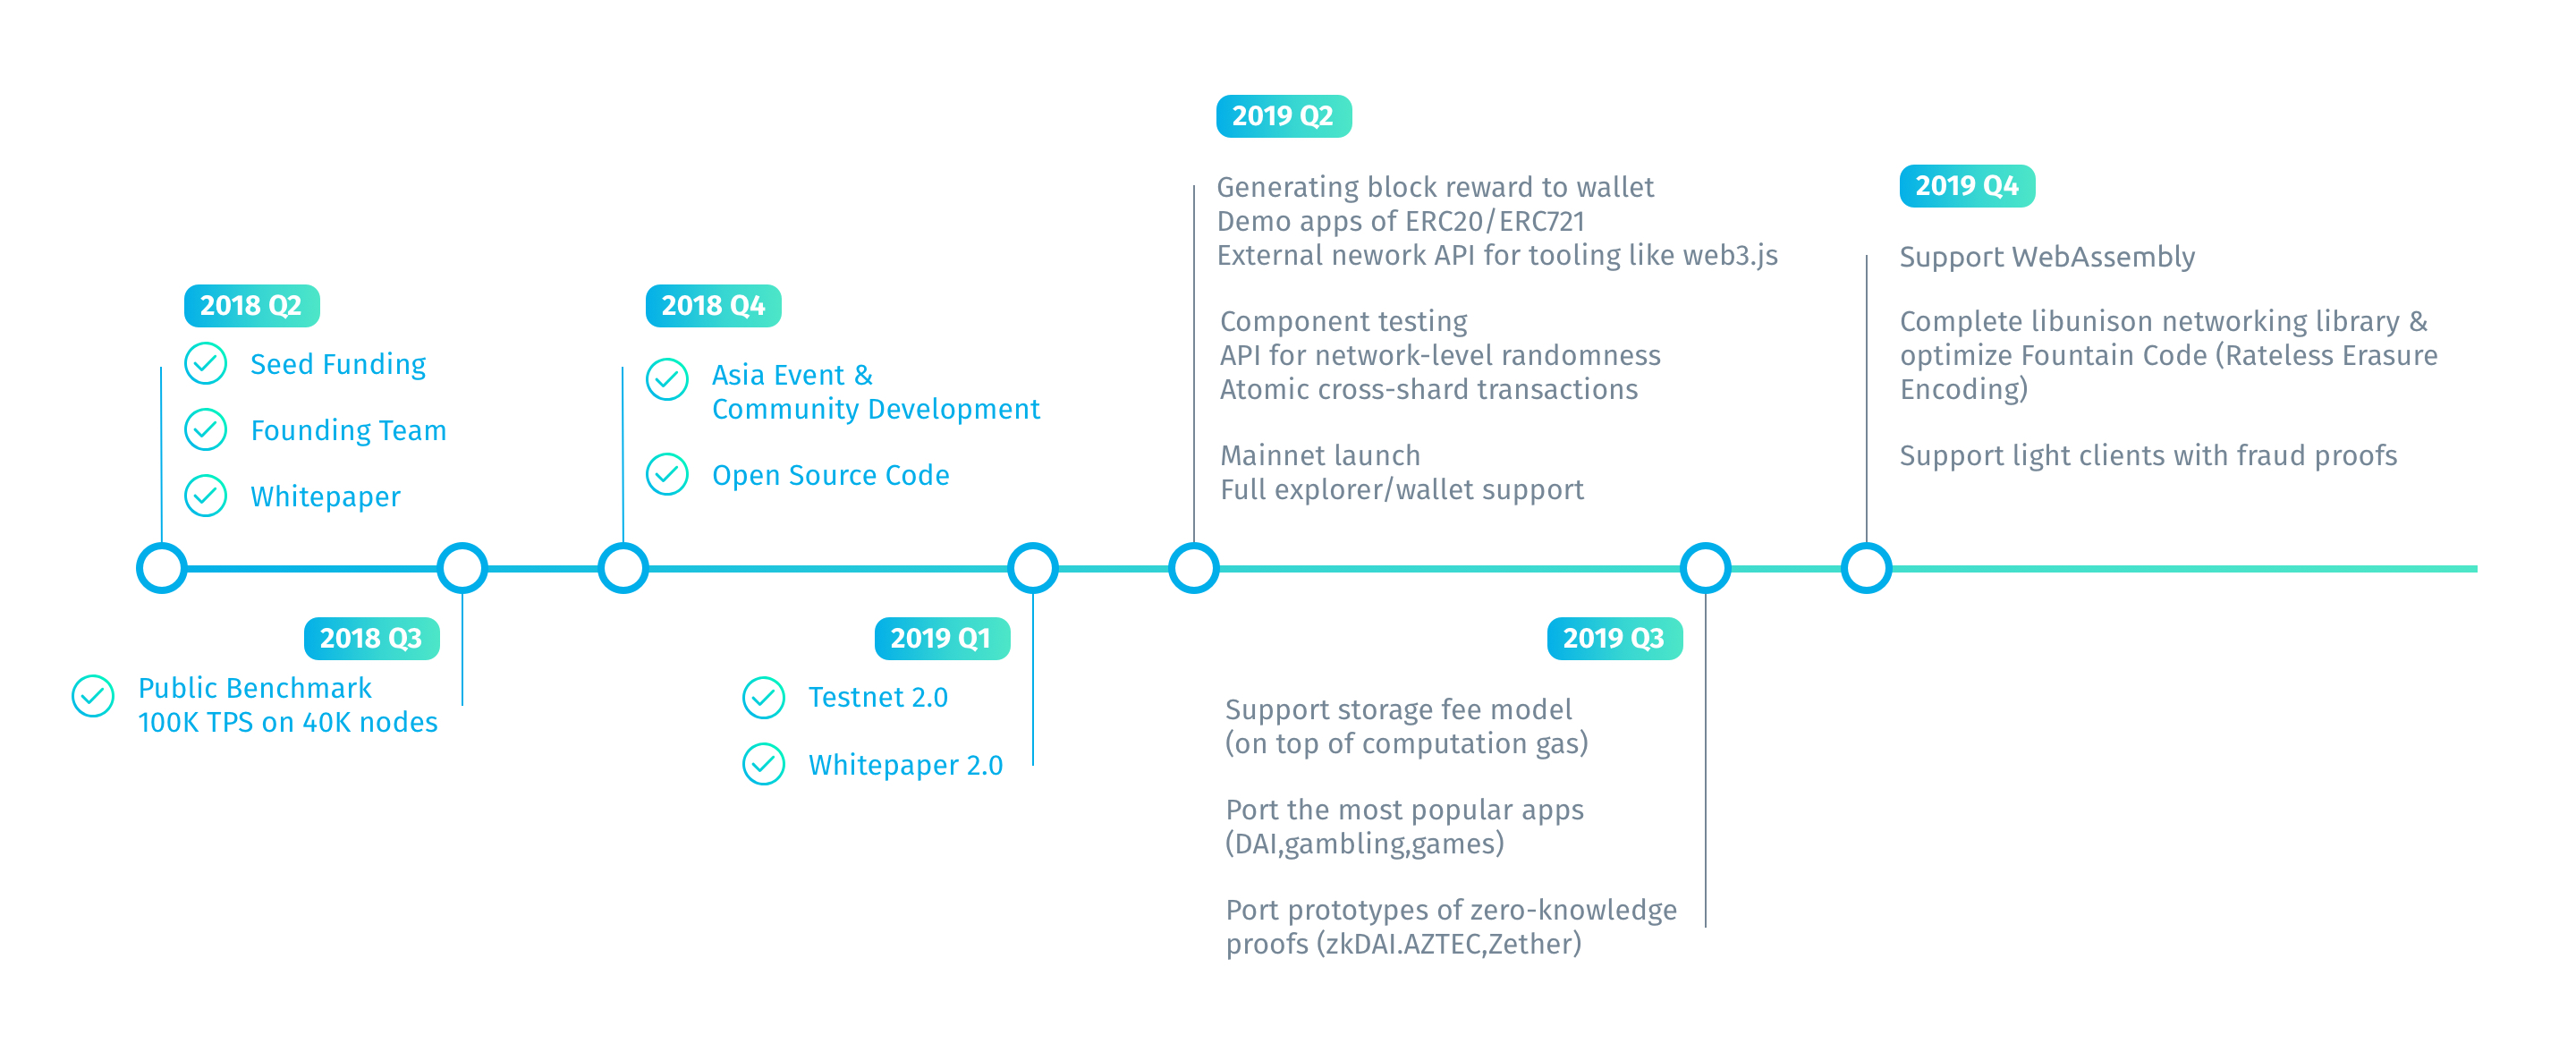 Harmony Roadmap 2018 - 2019